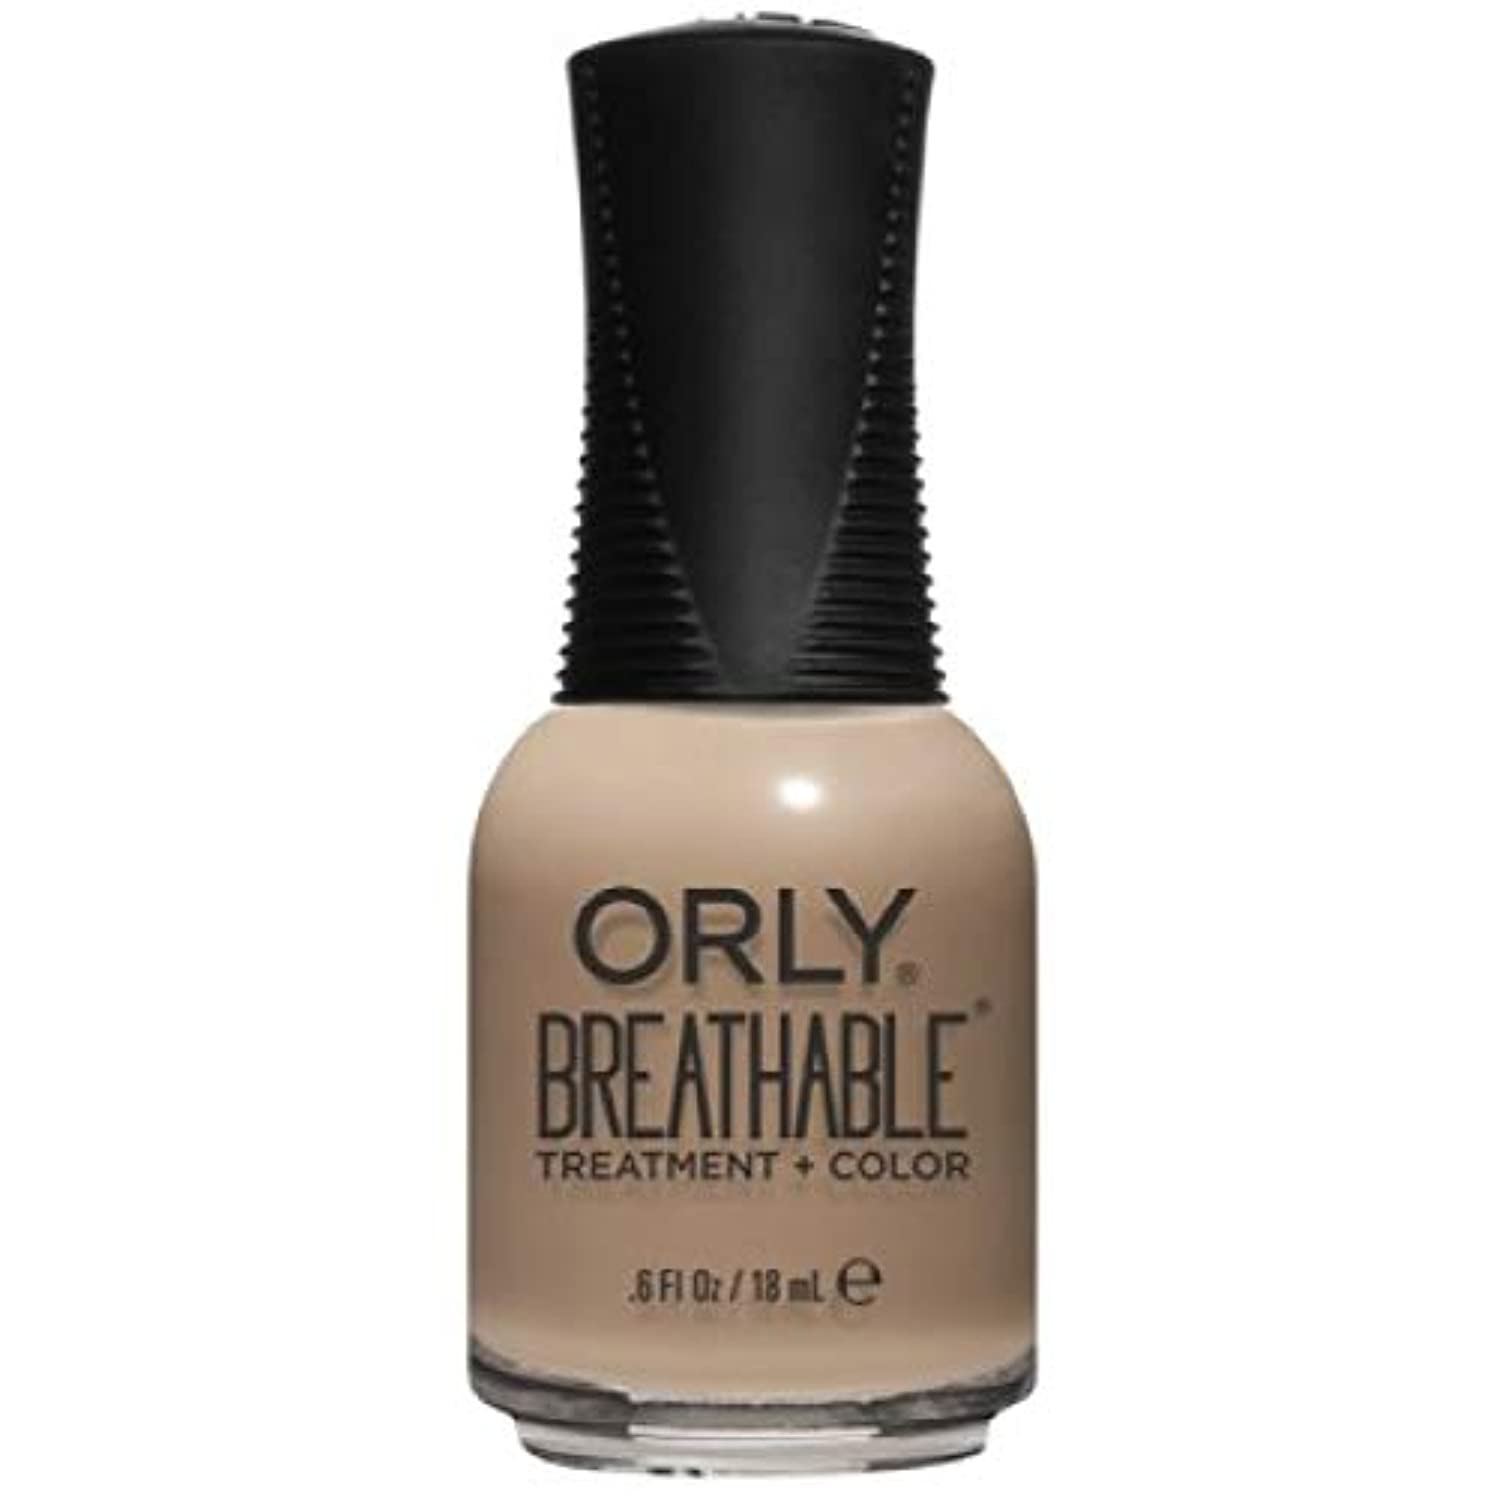 ボックス栄光占めるOrly Breathable Nail Lacquer - Treatment + Color - Bare Necessity - 0.6 oz / 18 mL